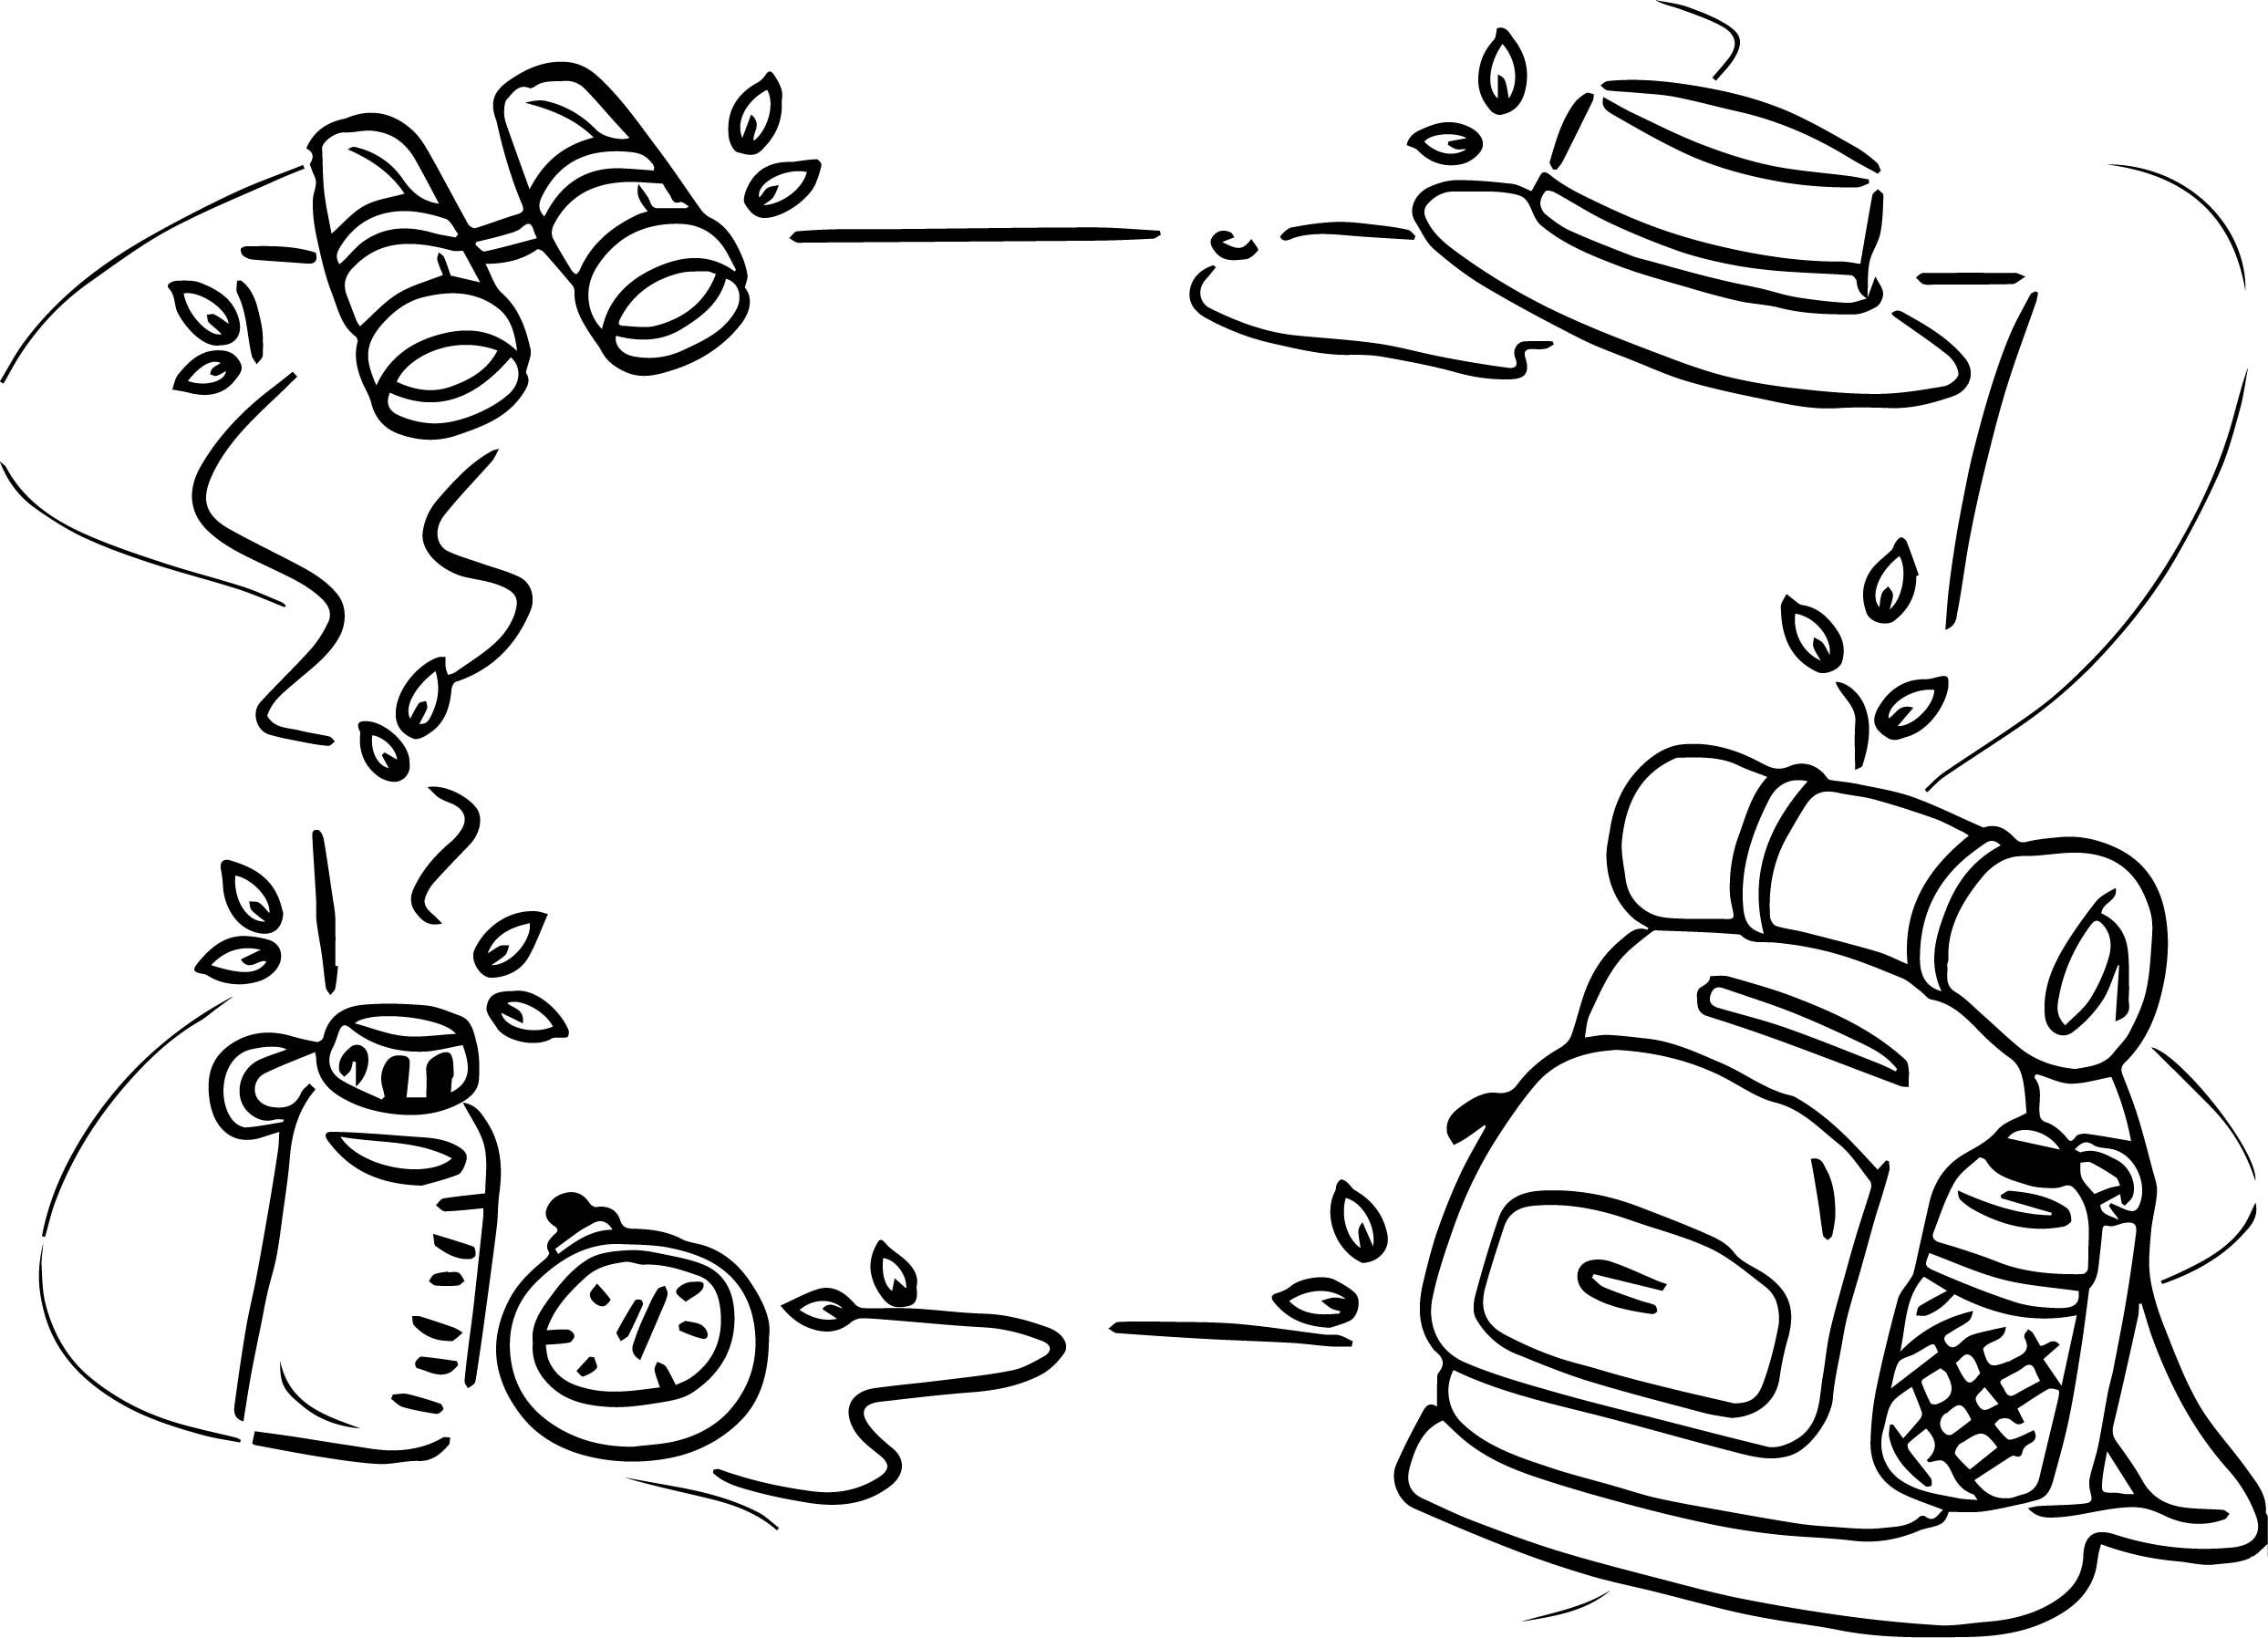 Background Camp Camping Coloring Page